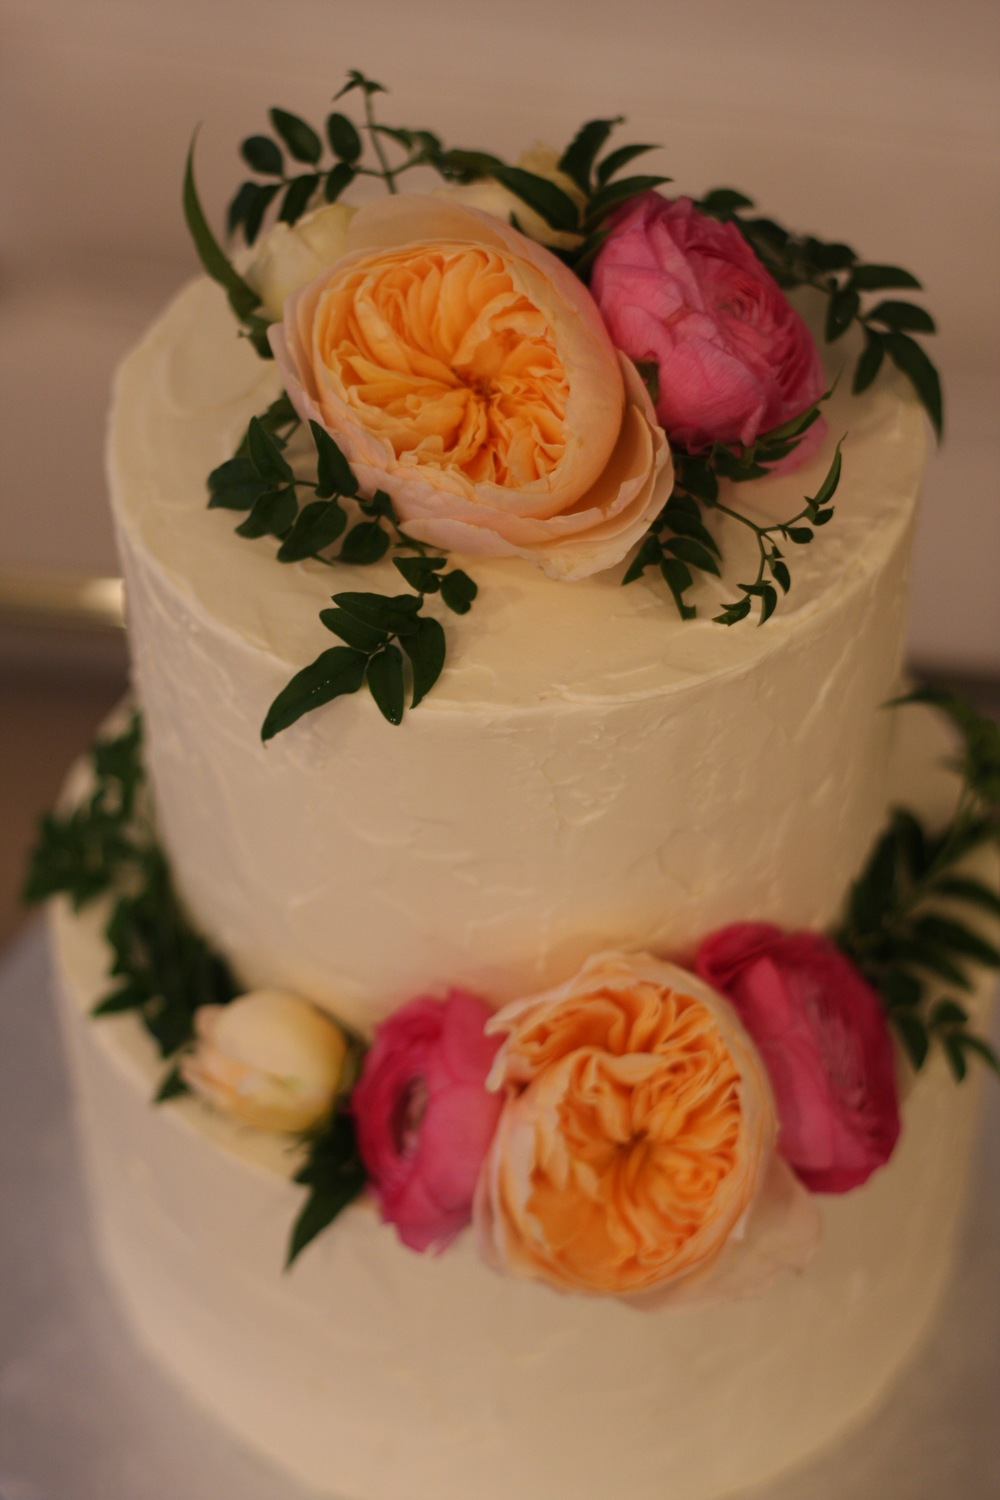 Rustic Buttercream Wedding Cake with Roses